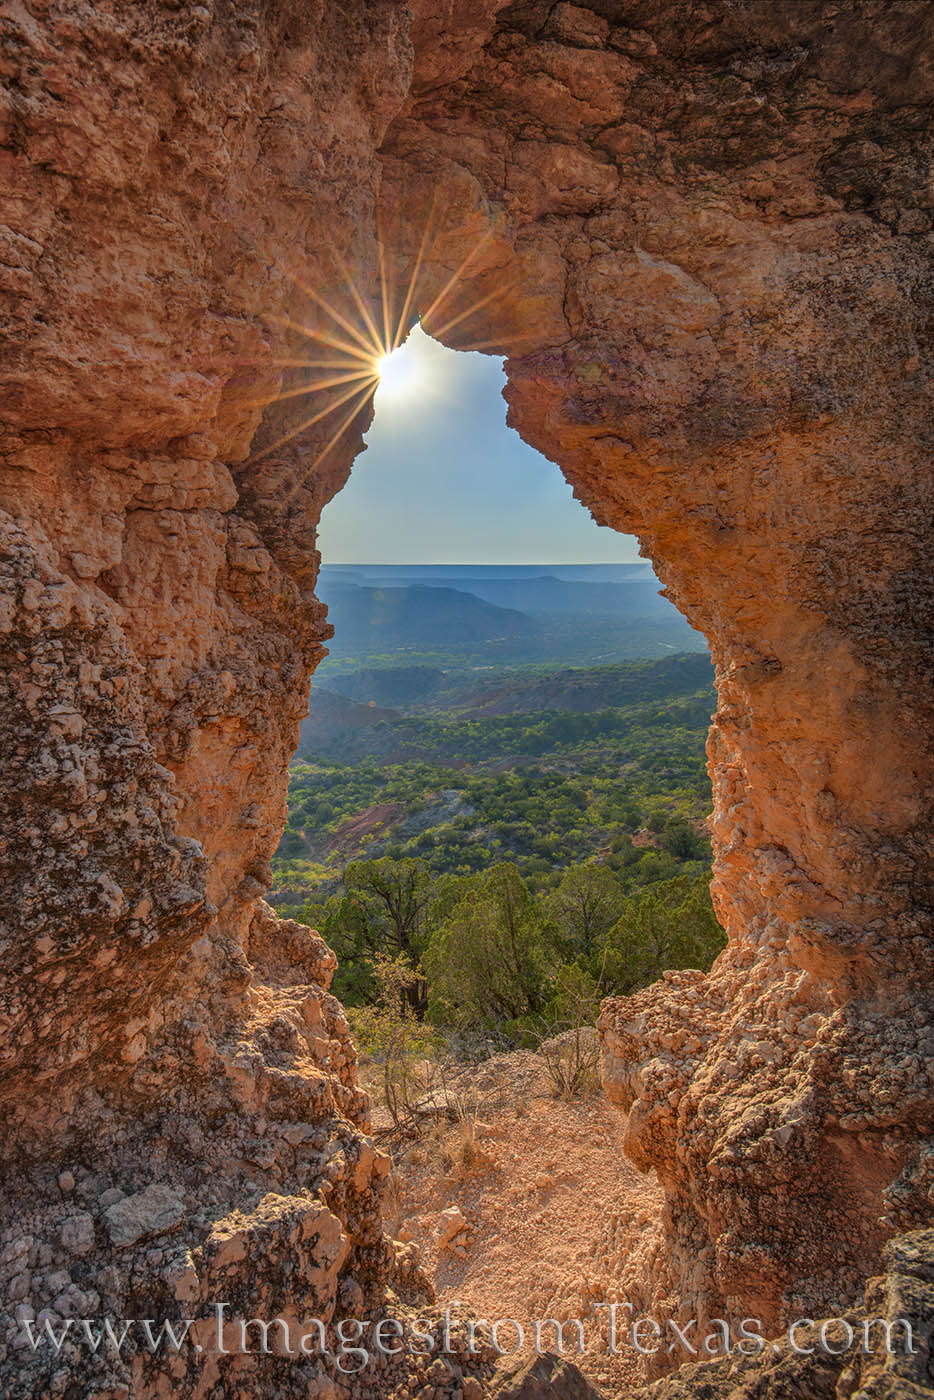 palo duro canyon, palo duro prints, west texas, arch, alter, east rim, fortress cliff, off-trail, photo